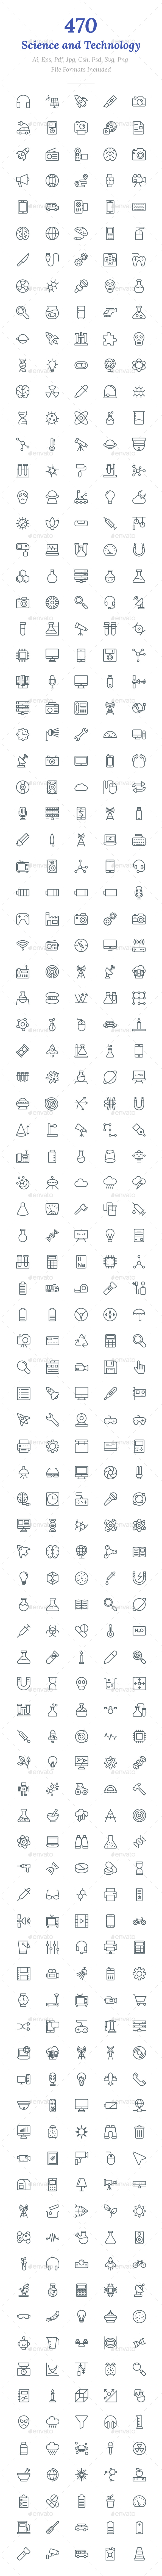 470 Science and Technology Line Icon - Icons